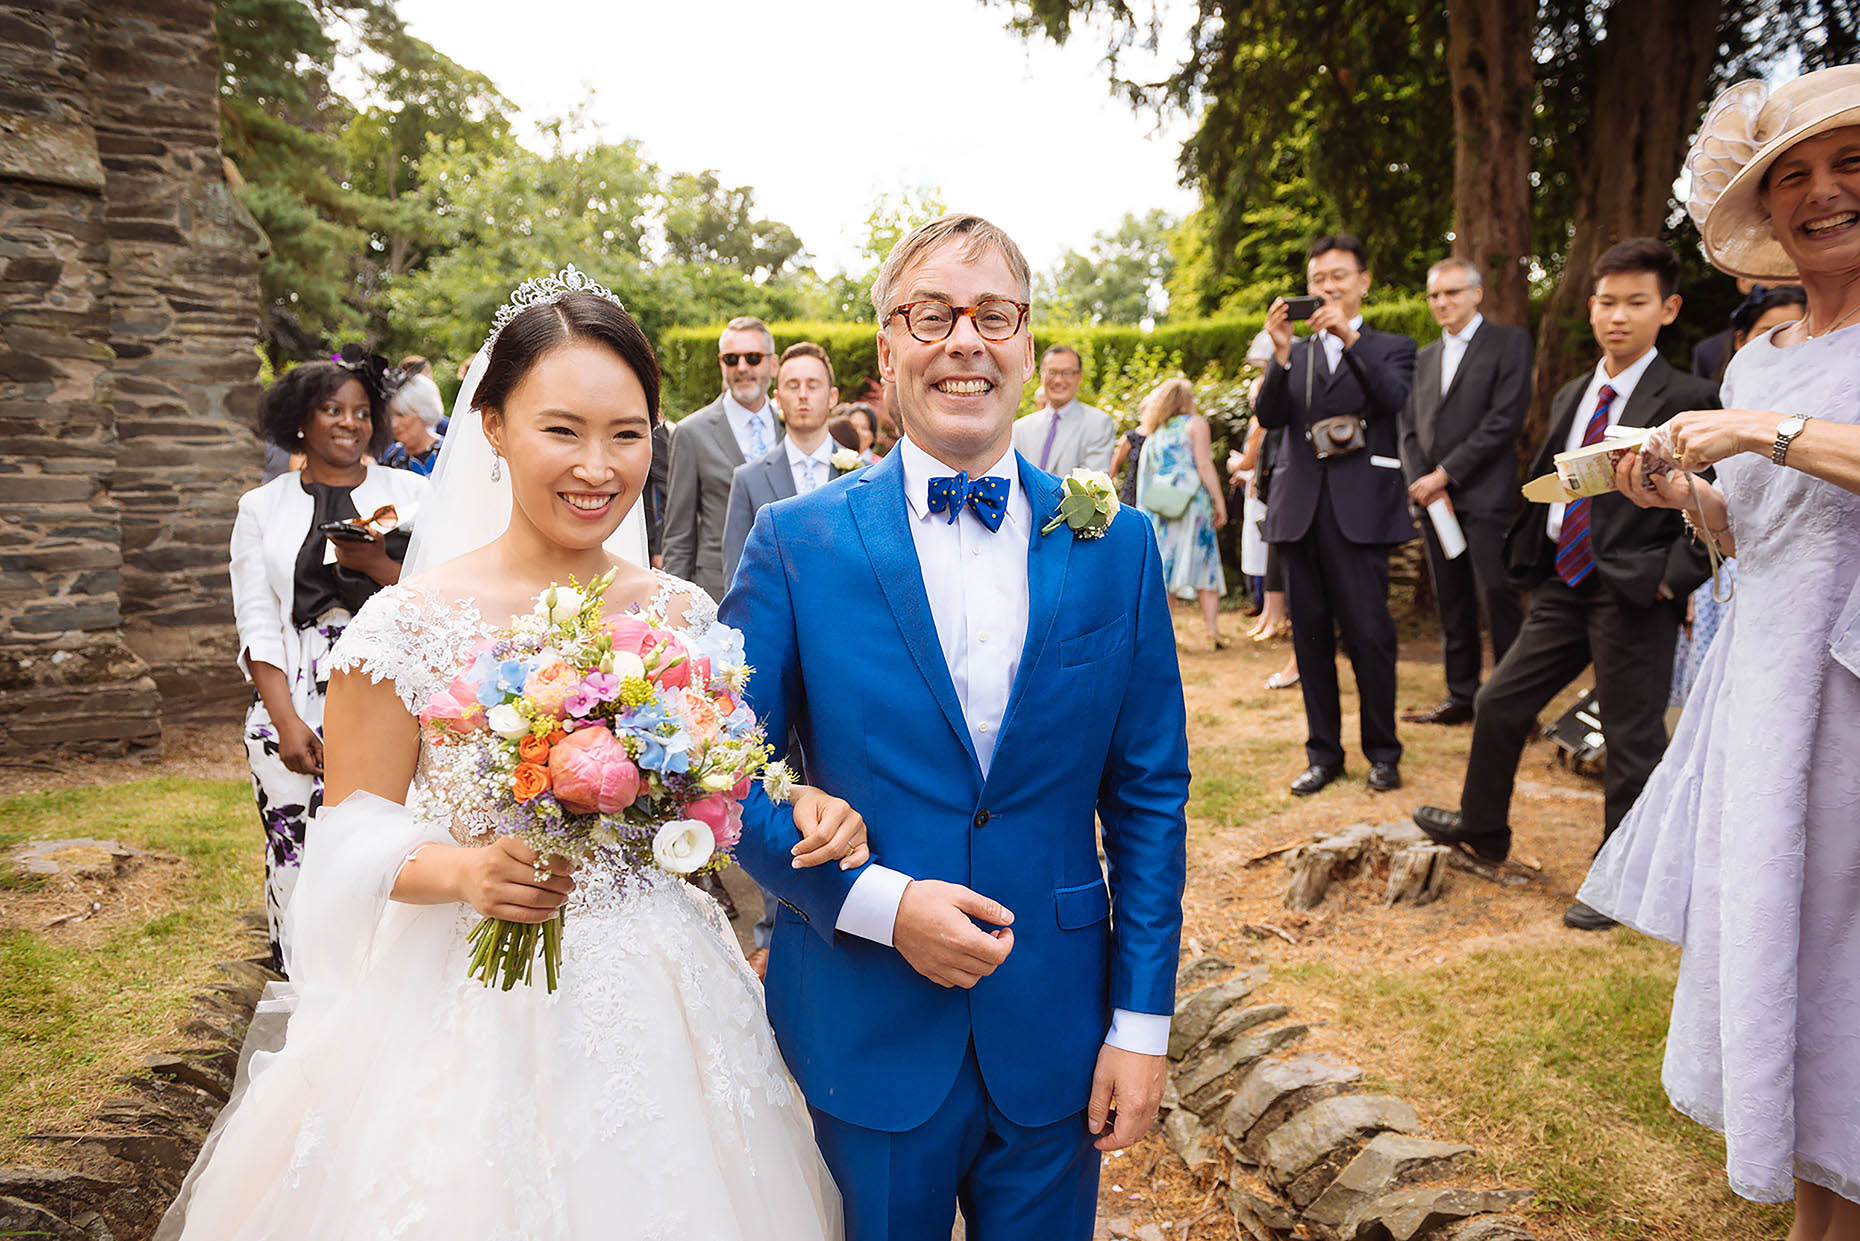 chay-felix-korean-wedding-church-ceremony-beaumanor-hall-bride-groom-34